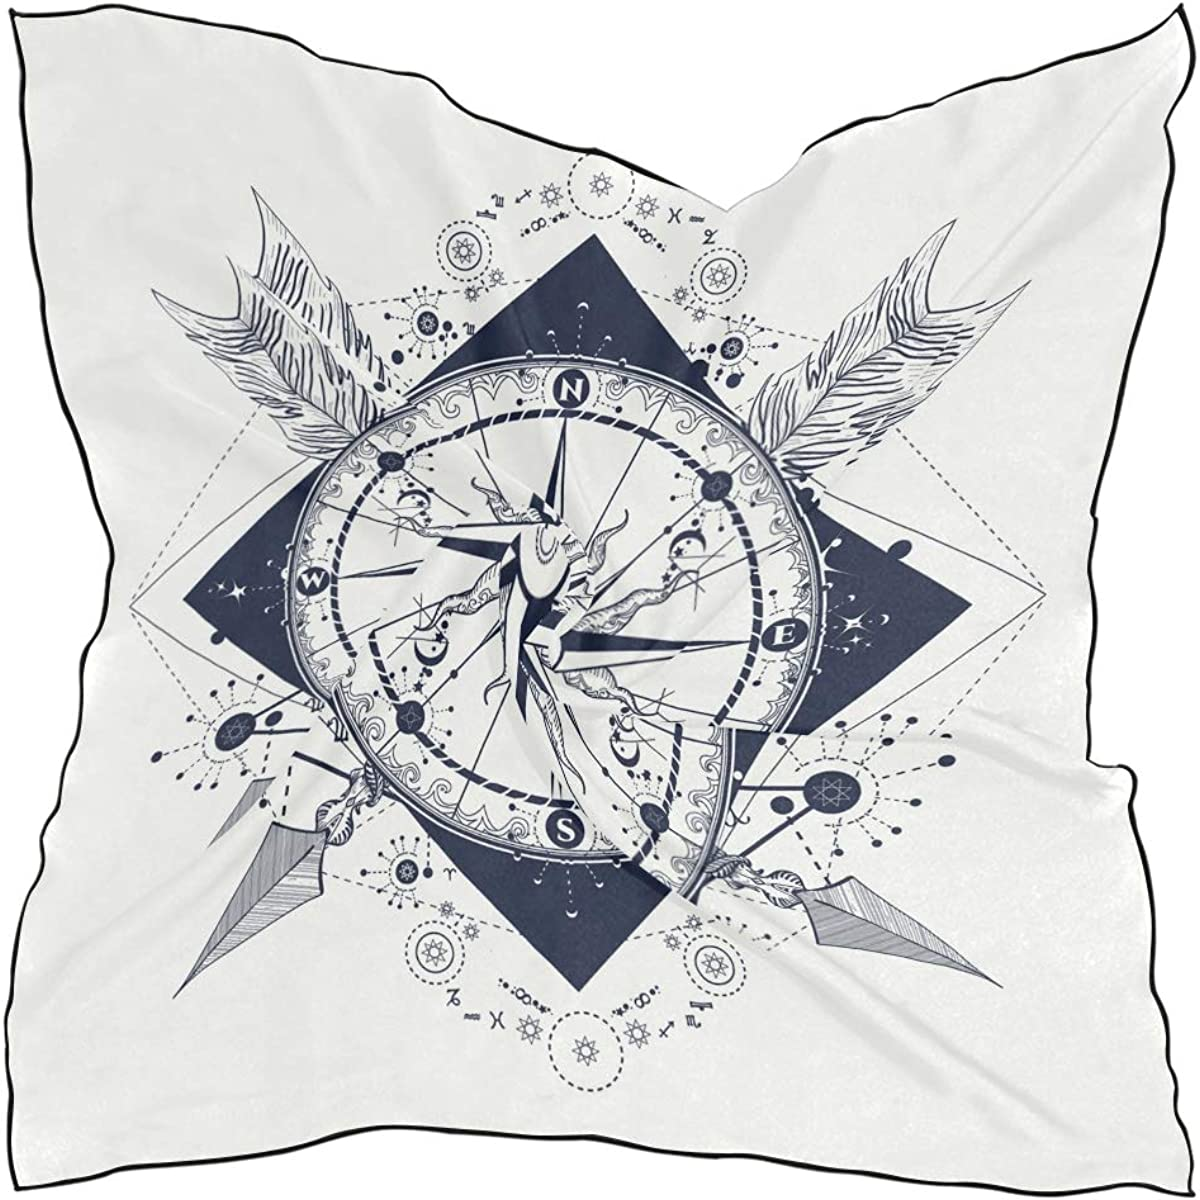 XLING Fashion Square Scarf Vintage Geometric Abstract Compass Lightweight Sunscreen Scarves Muffler Hair Wrap Headscarf Neckerchief for Women Men